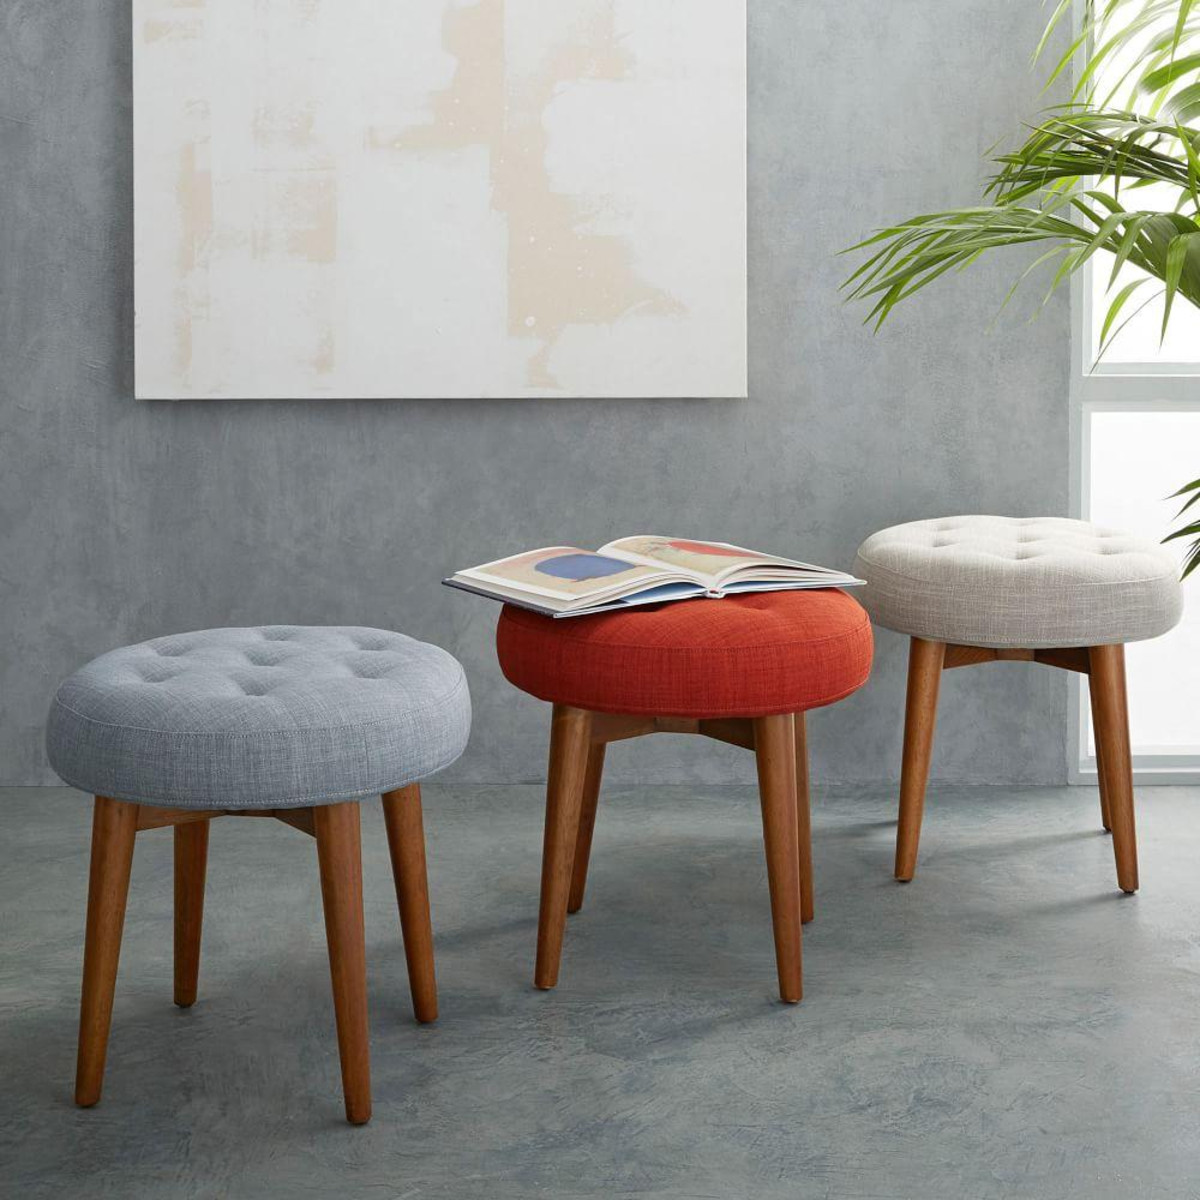 Decorative Foot Stool | West Elm Ottoman | Furniture Footstools